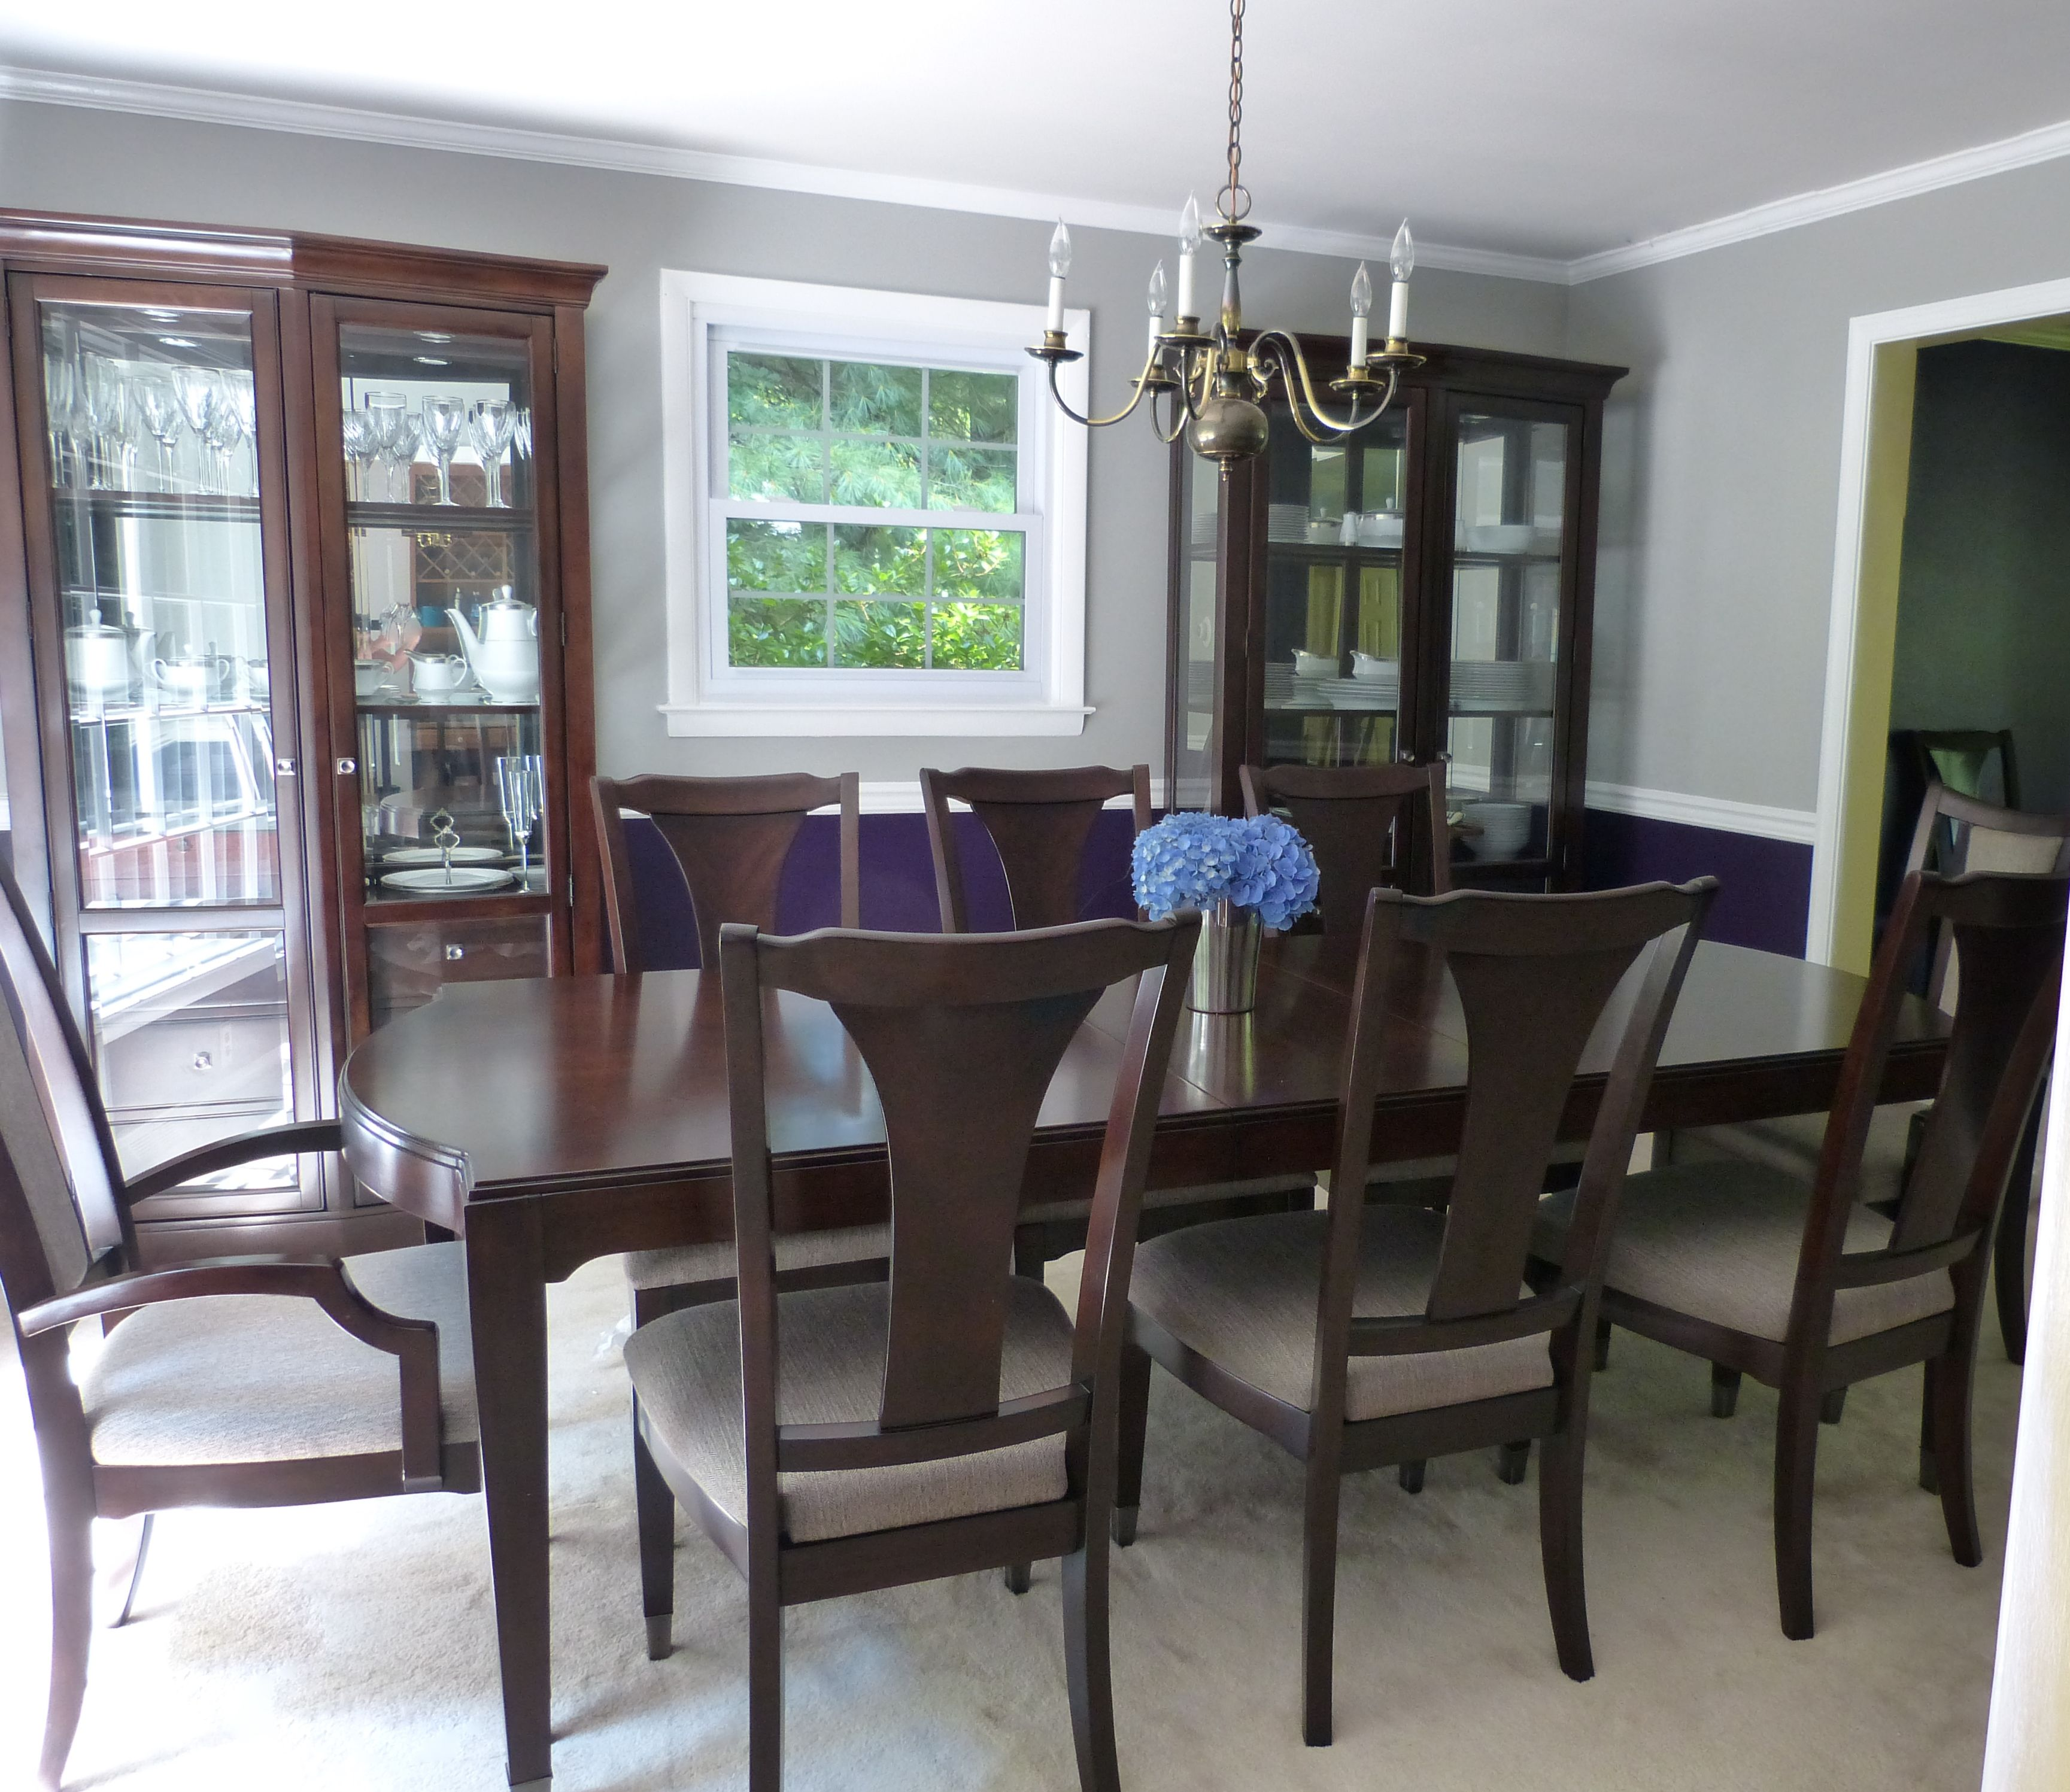 Behr Dining Room Colors: I Love My New Royal Purple And Gray Dining Room. Behr